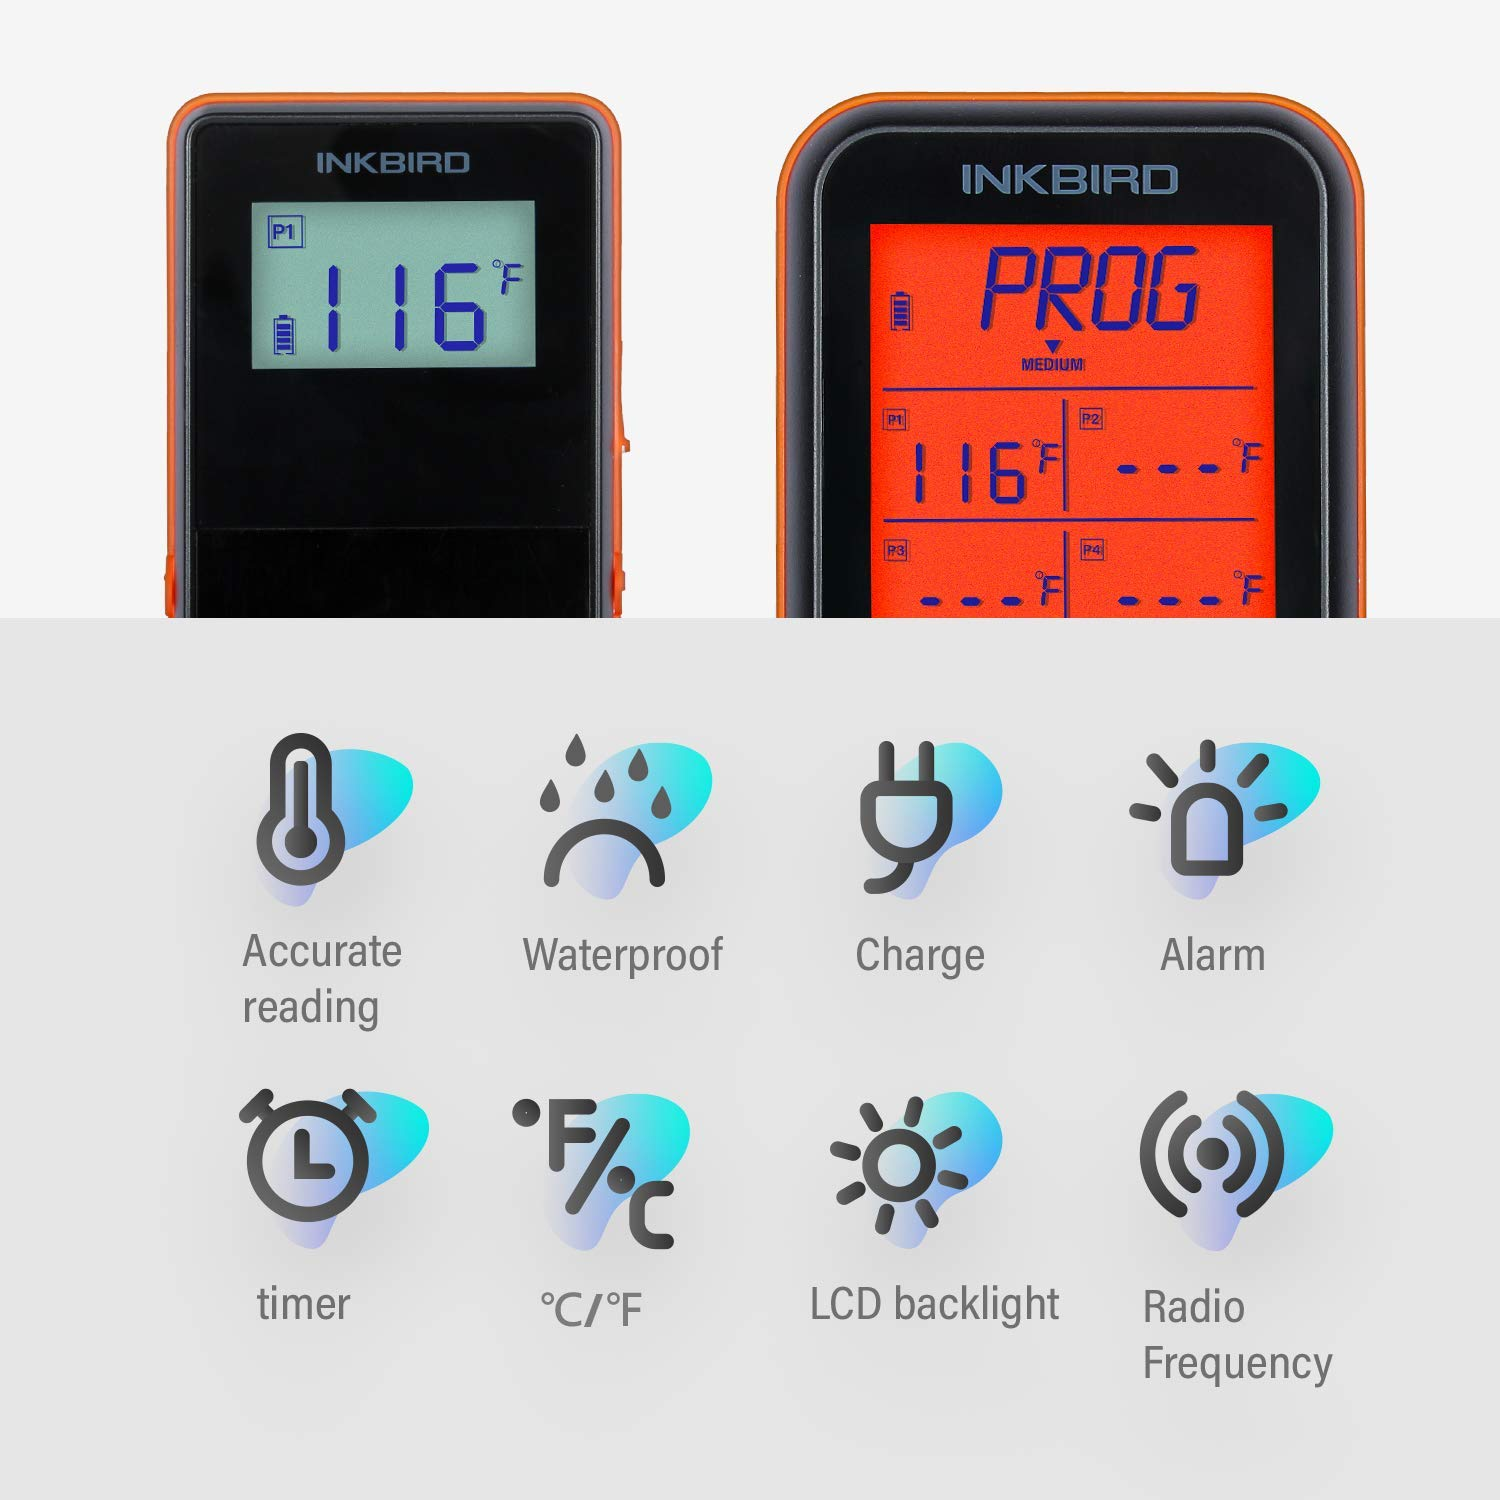 Inkbird IRF-4S 1500 Feet Waterproof Wireless BBQ Thermometer, 1000mAh Li-Battery and USB Charging Cable, Meat Grill Thermometers with Timer, Alarm for Cooking, Smoker, Barbecue (4 Probes) by Inkbird (Image #2)